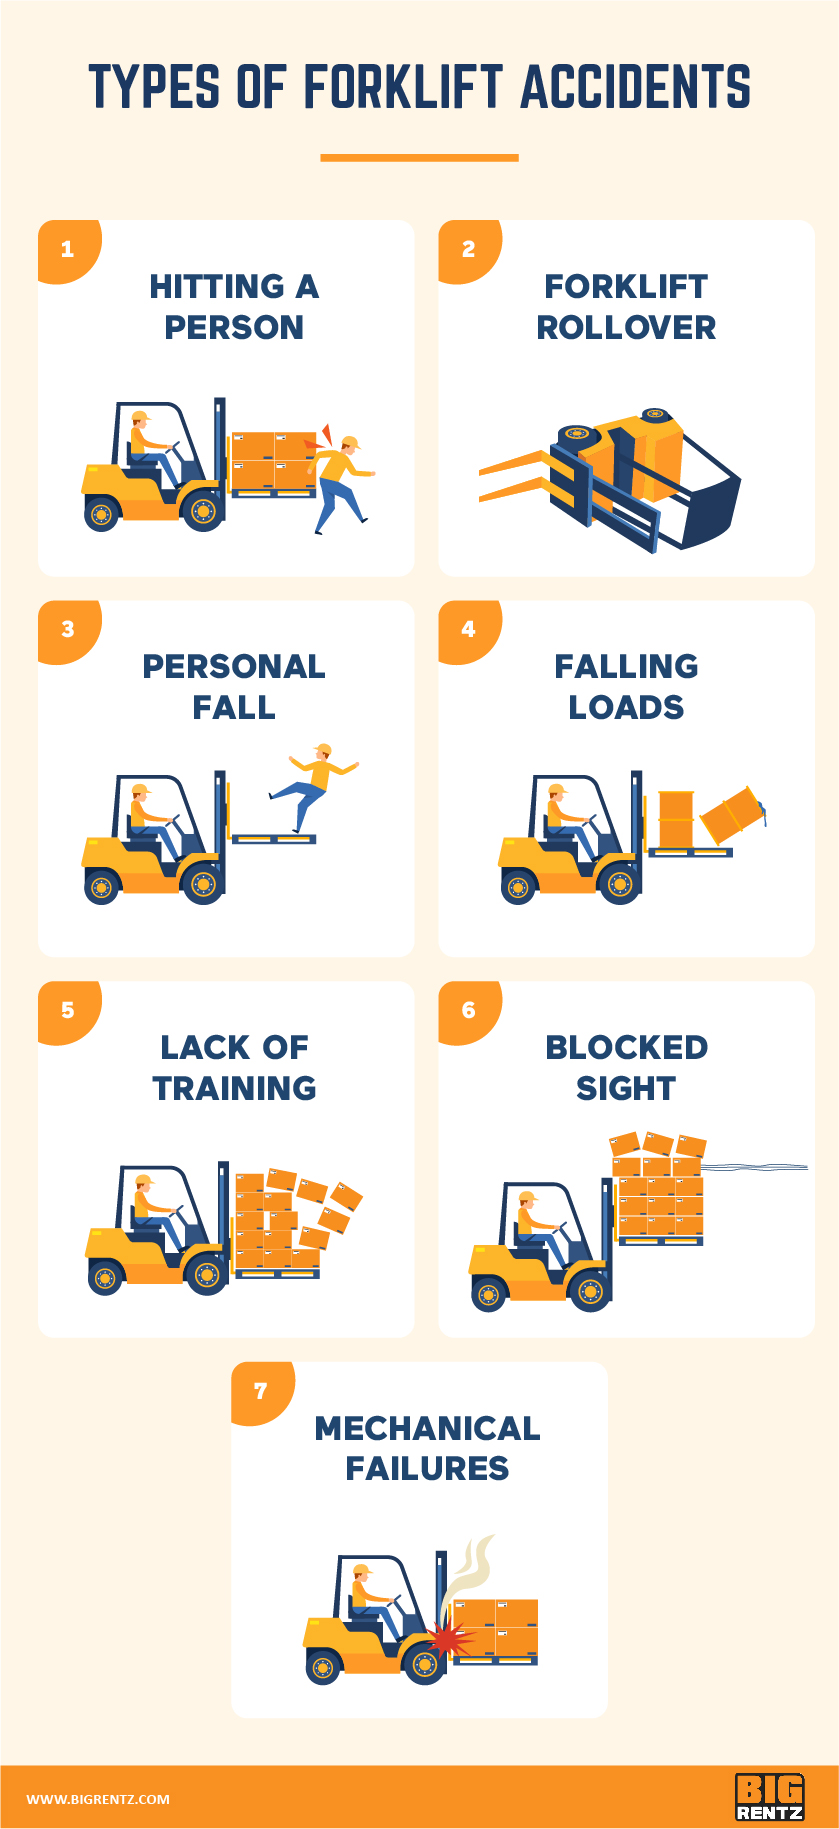 Types of forklift accidents